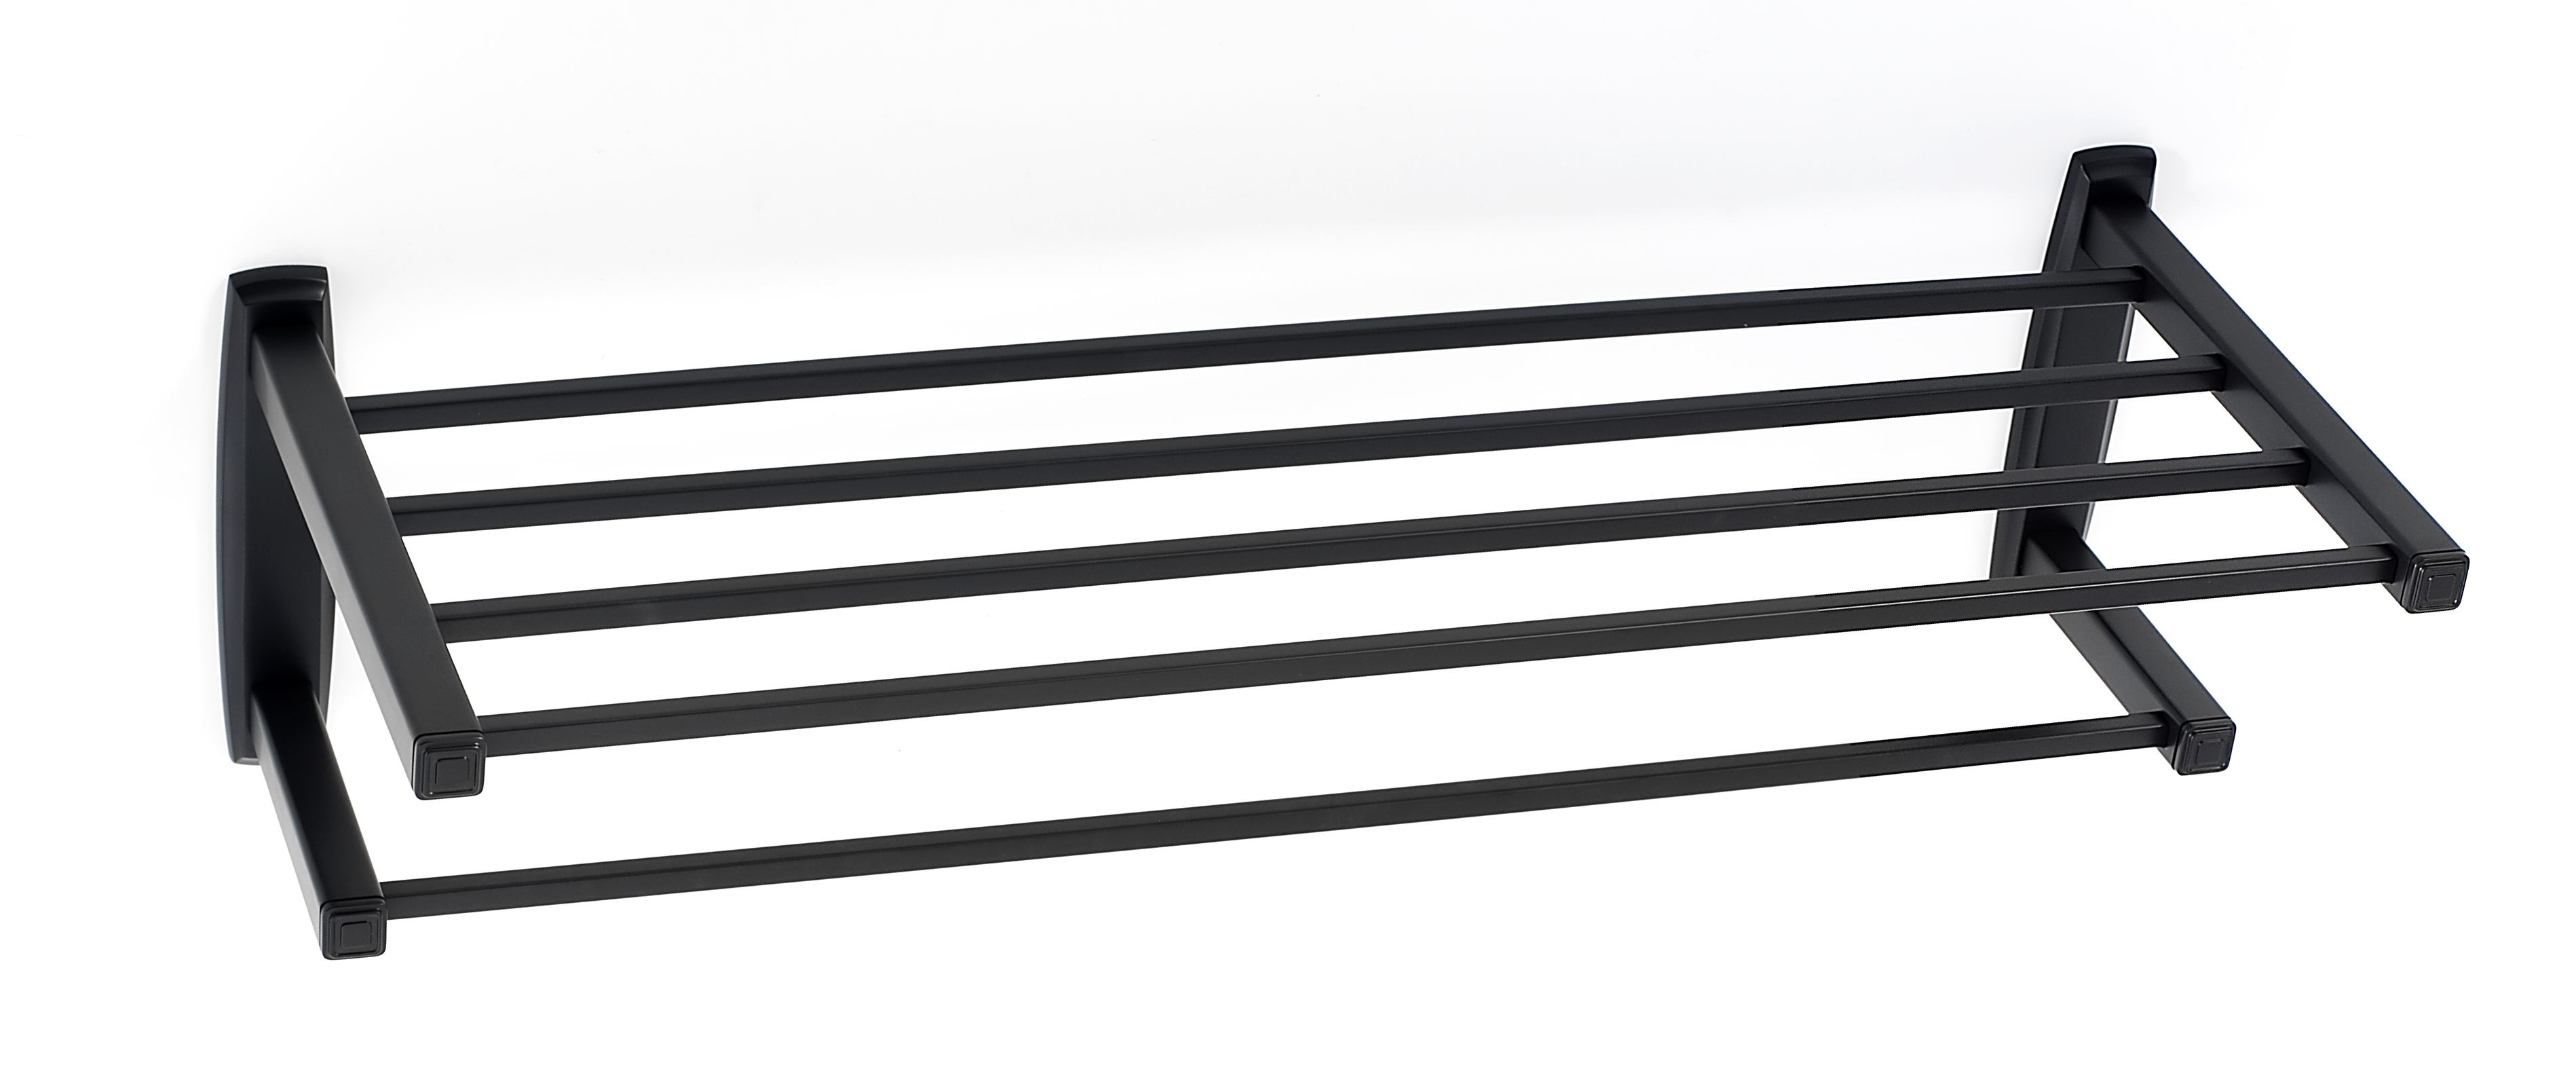 Cube Towel Rack A 24 Creations By Alno Inc